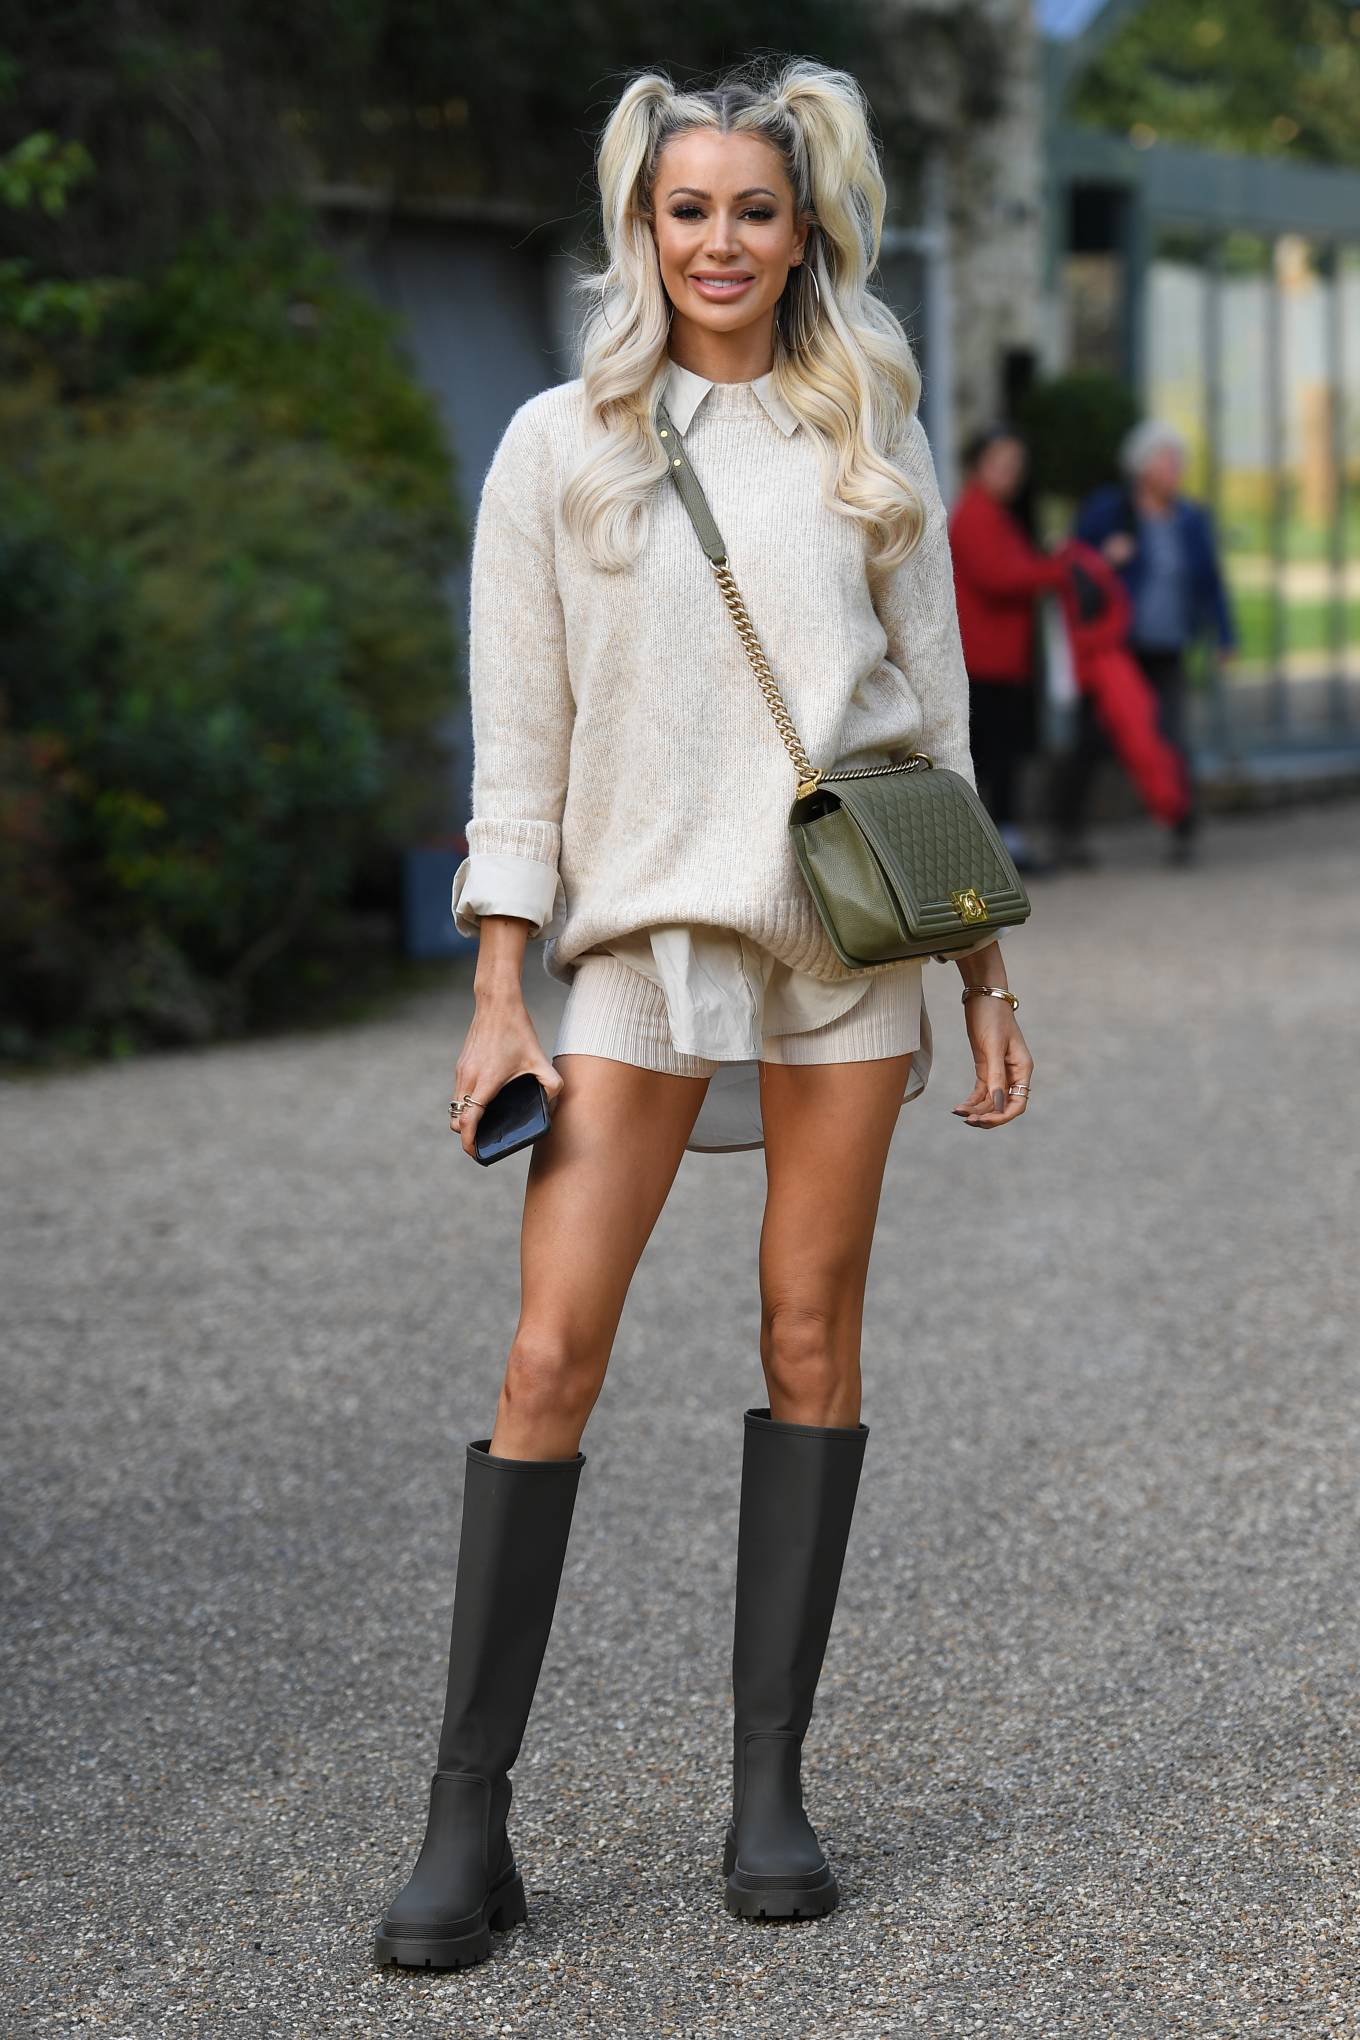 Olivia Attwood 2020 : Olivia Attwood – The Only Way is Essex TV Show filming in Essex-07